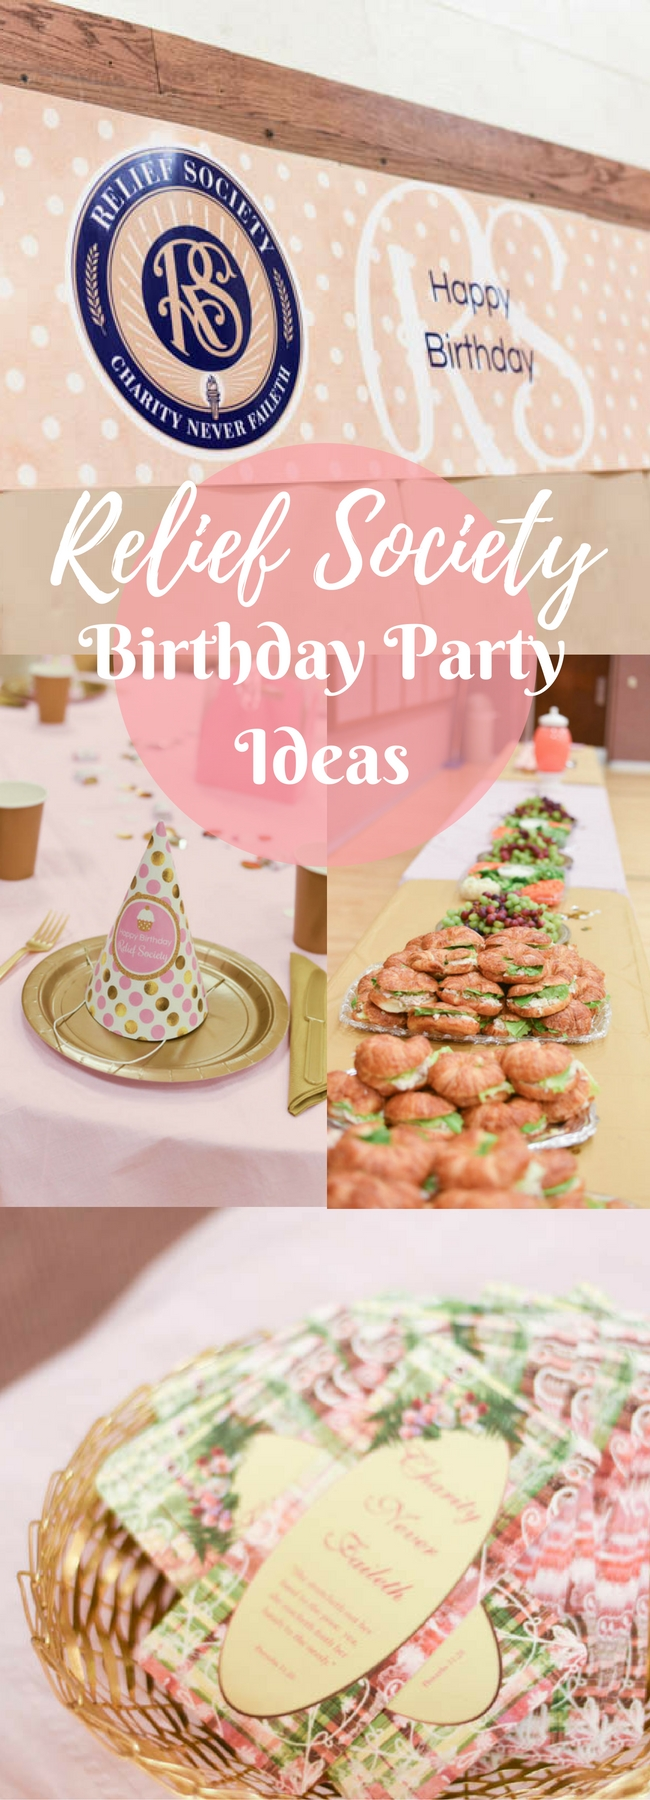 10 Cute Relief Society Birthday Party Ideas simple and fun relief society birthday ideas 2020